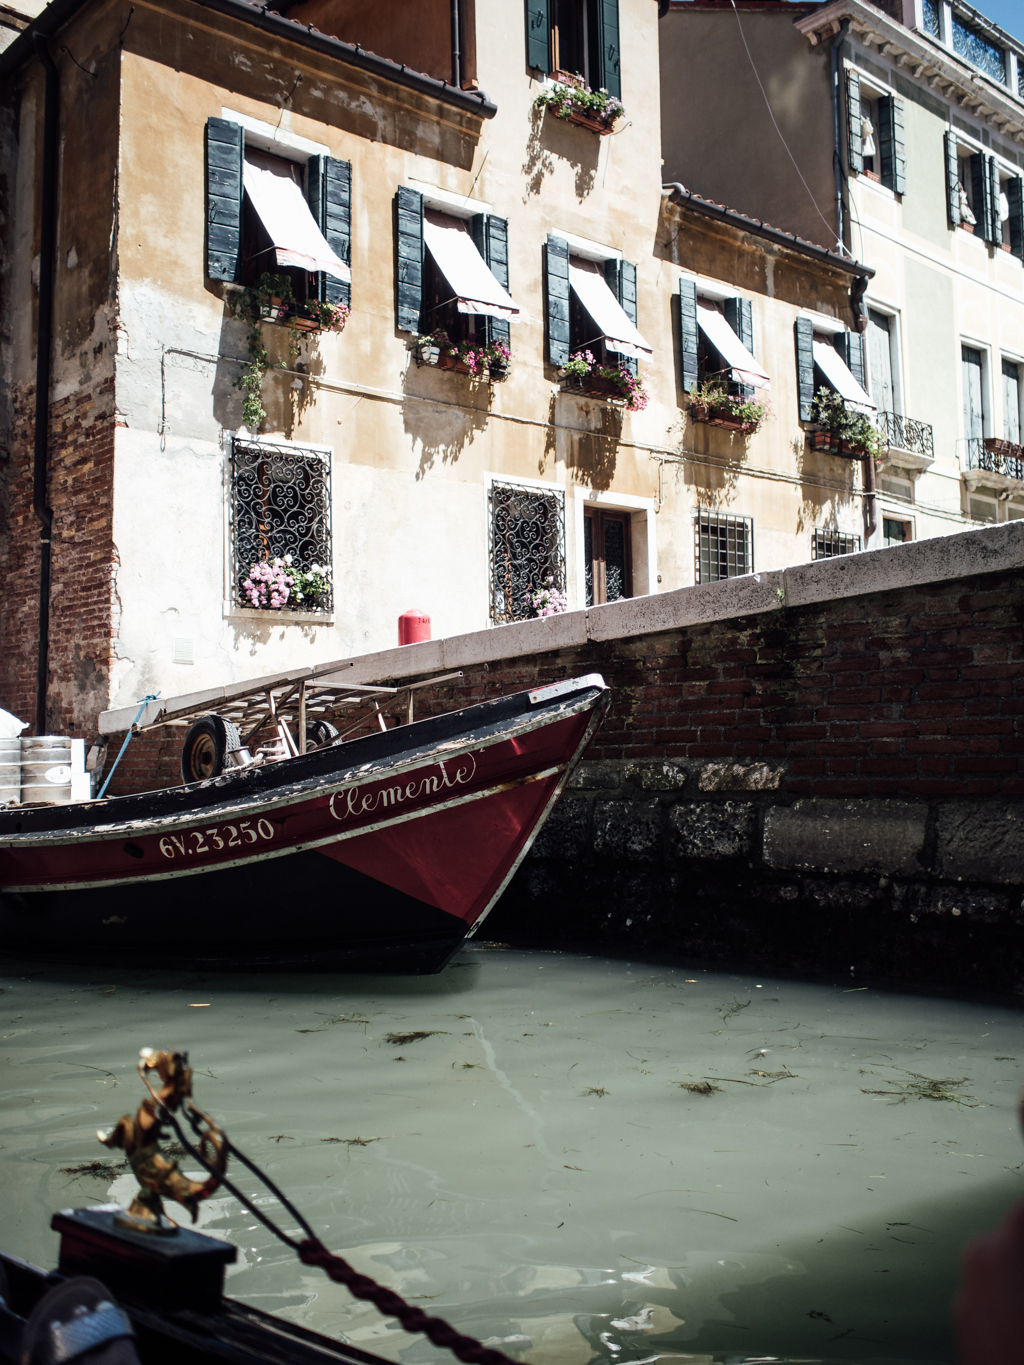 Venice Visual Diary - Gondola Living